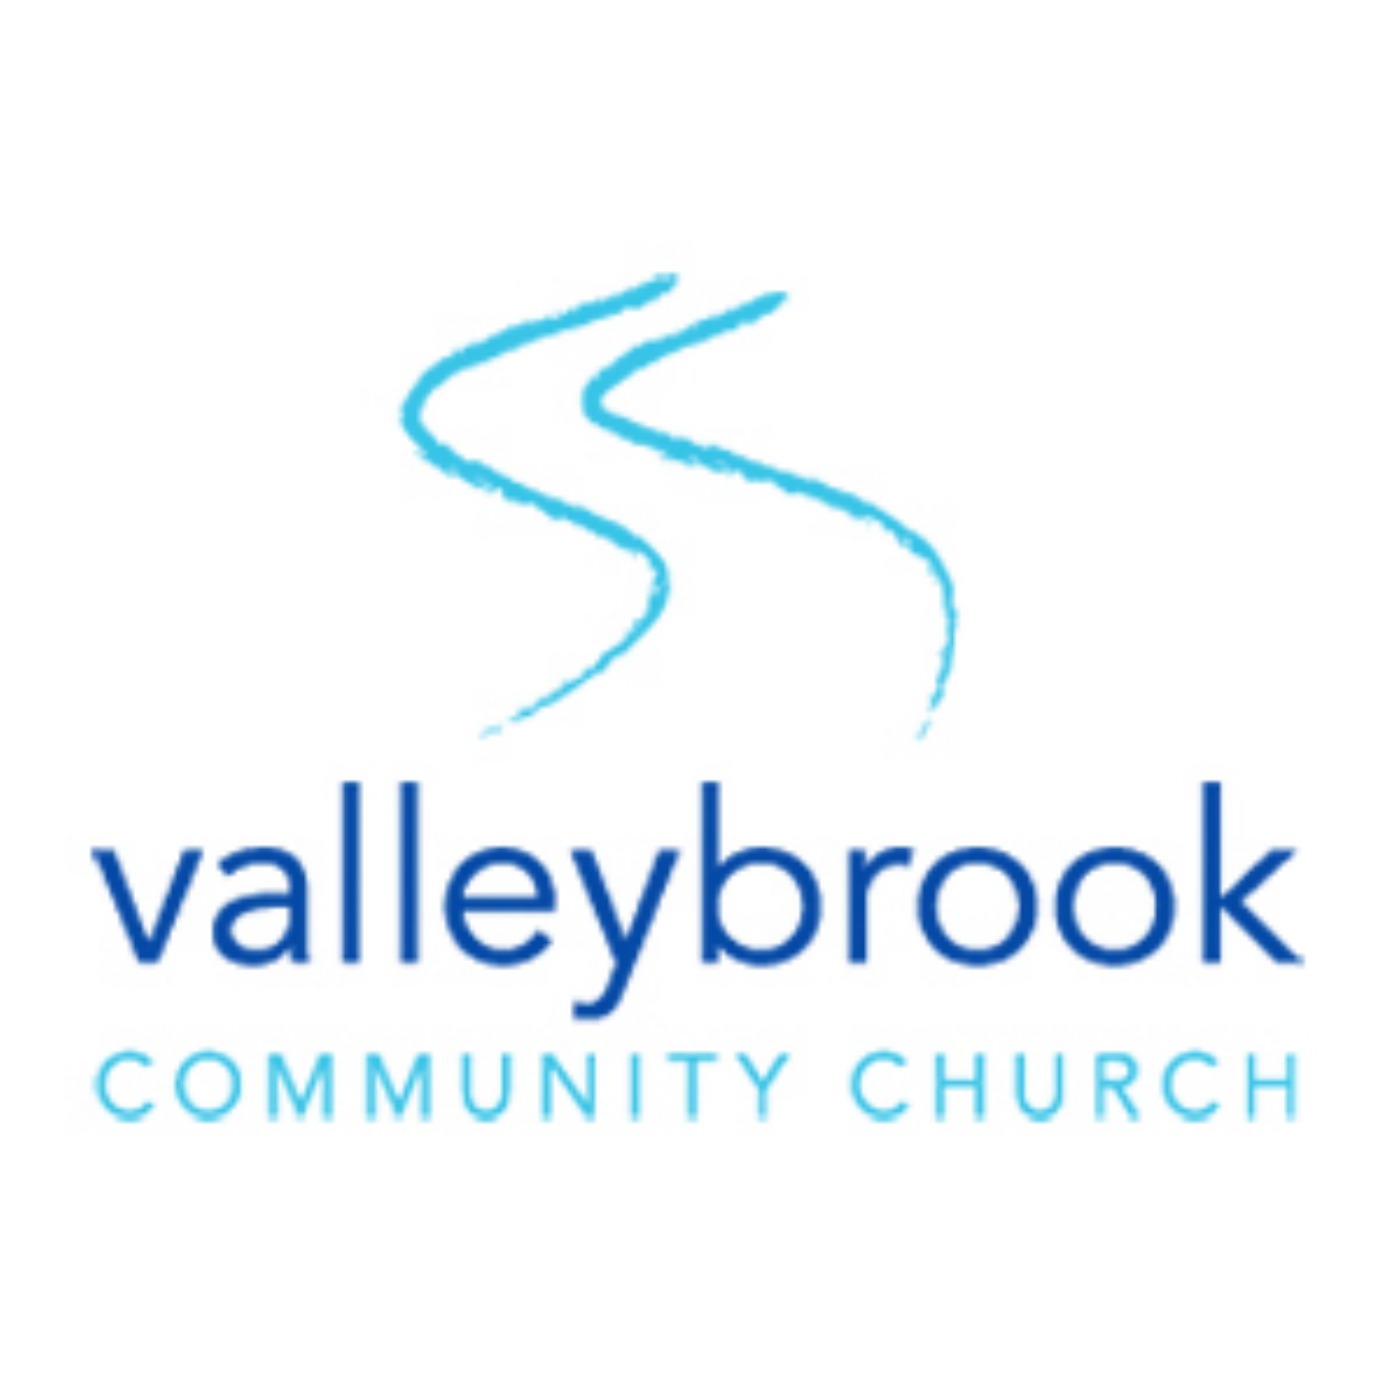 Sermons from Valleybrook Community Church